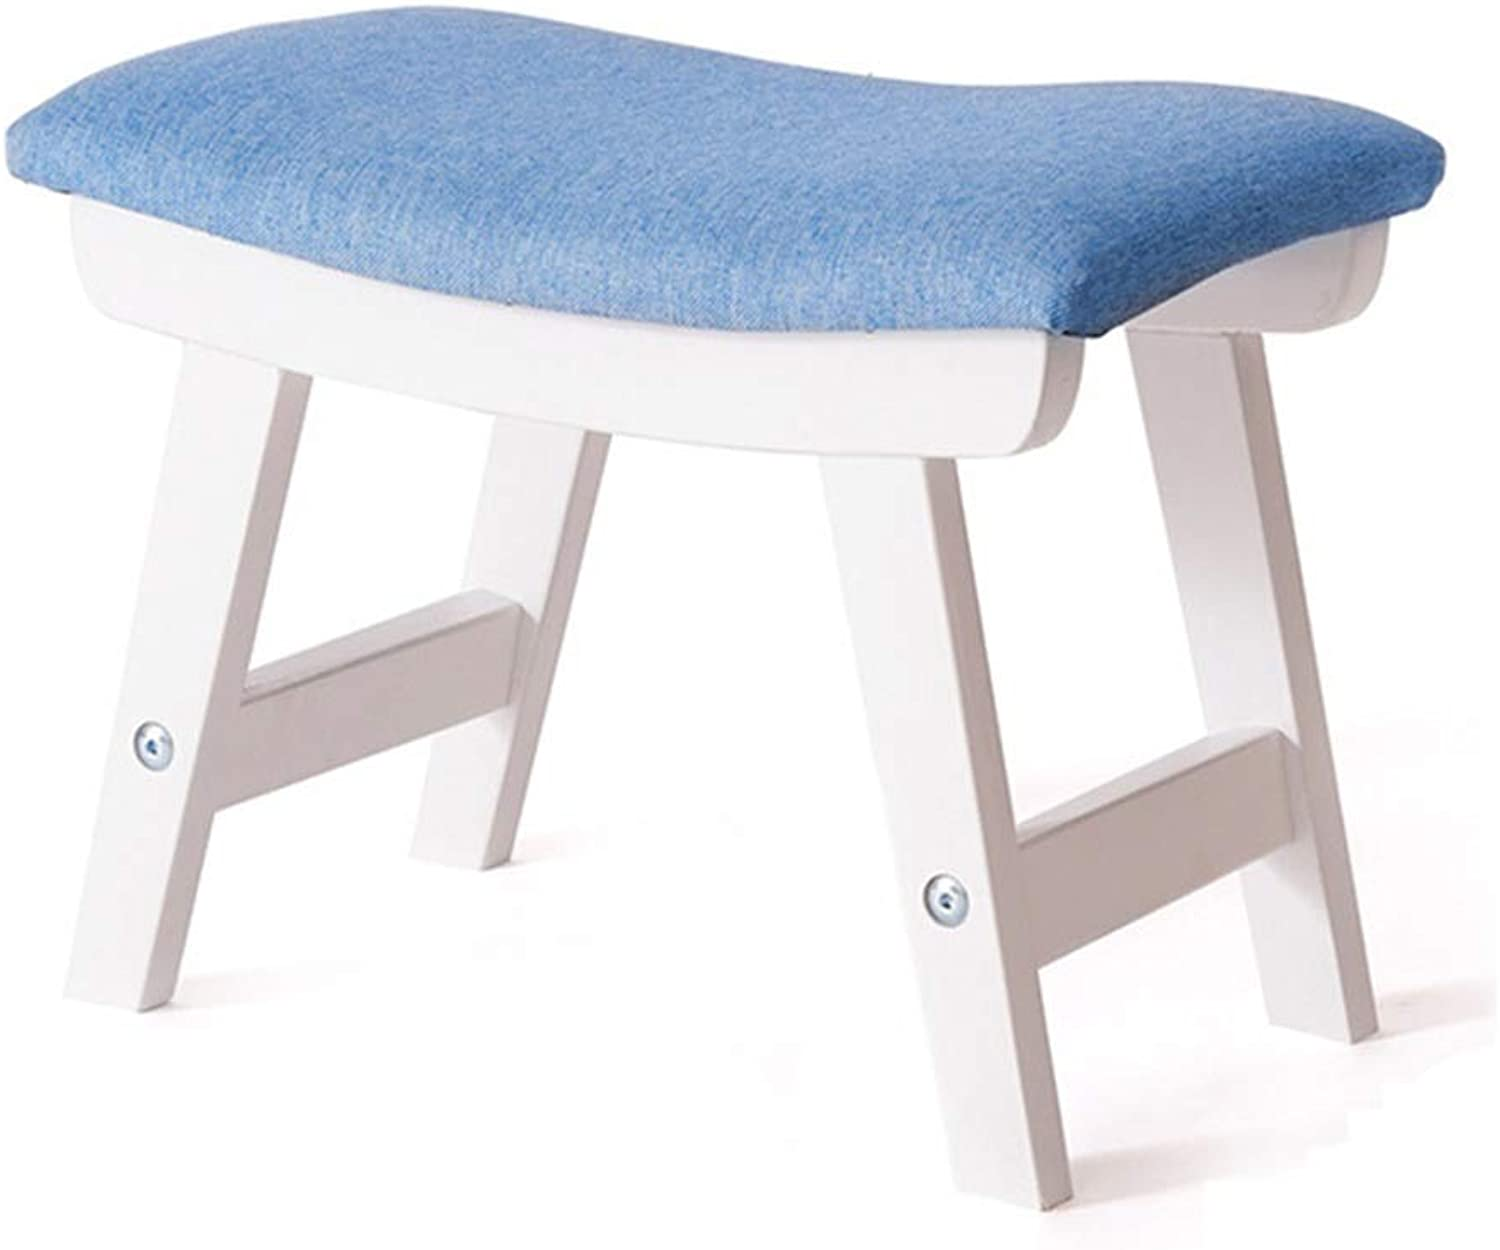 Small Stool-Simple Curved Solid Wood Stool Bench Casual Stool shoes Bench Sofa Bench FENPING (color   bluee, Size   38  24  29cm)